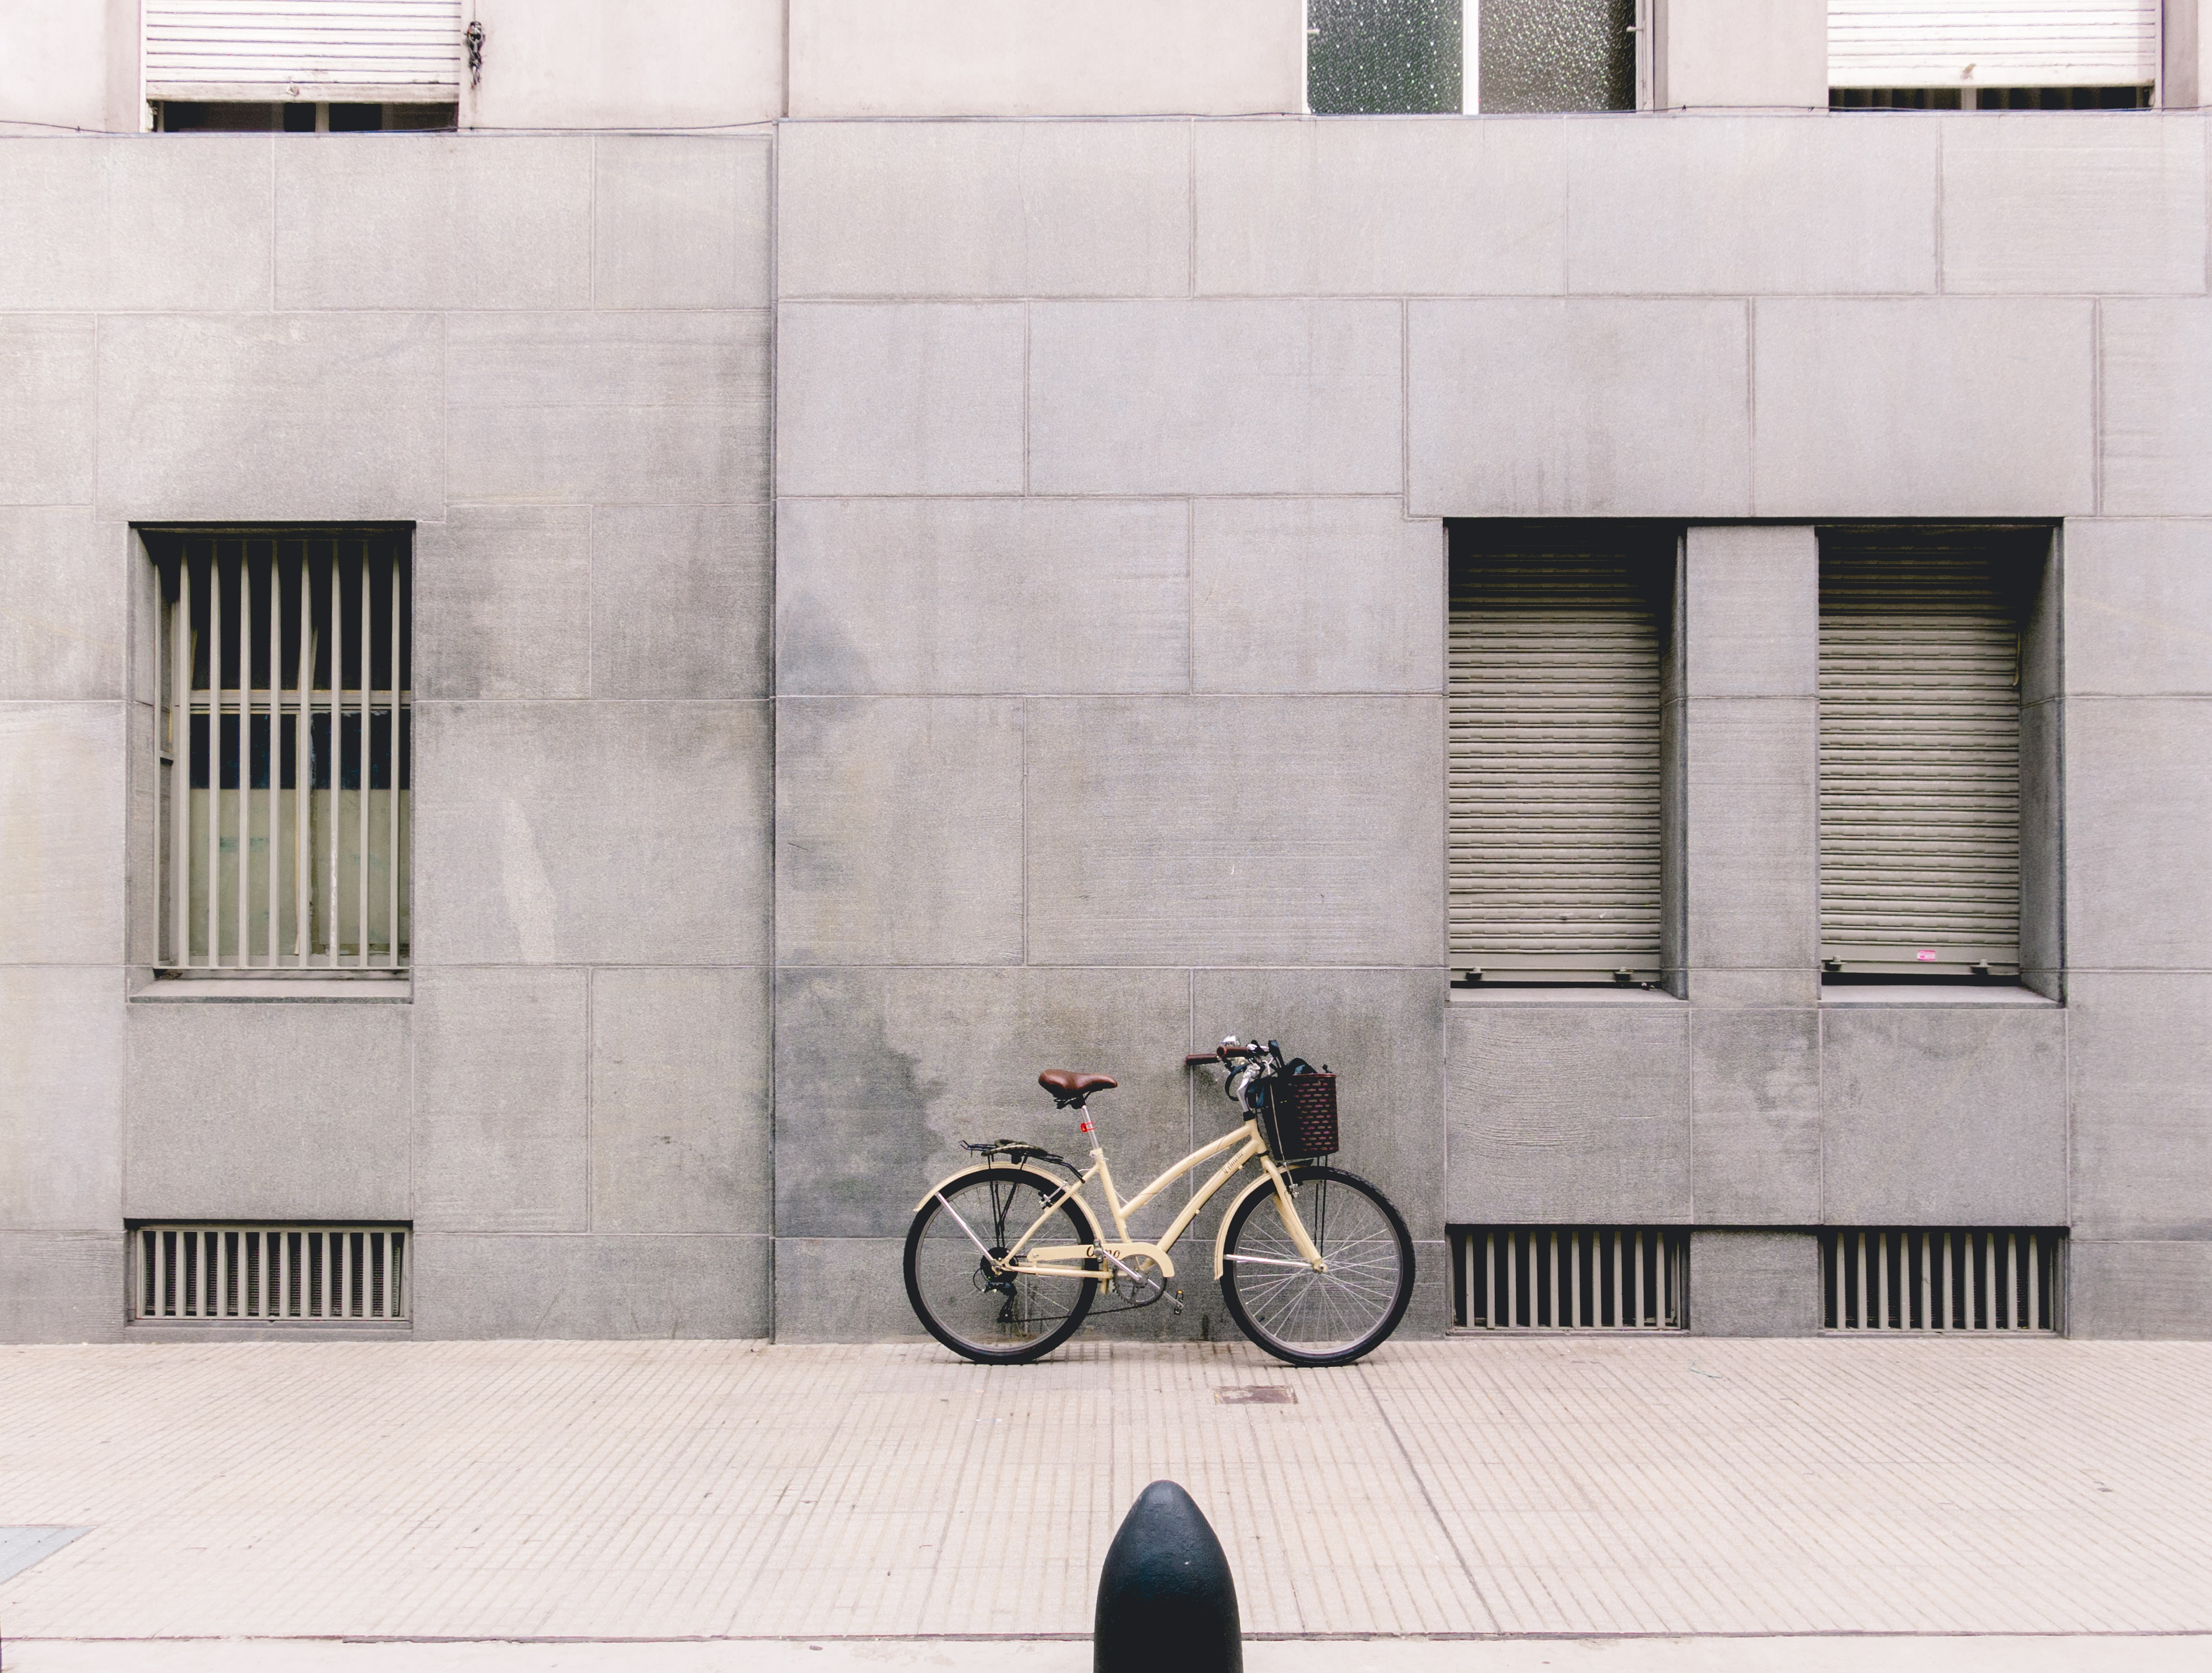 person taking photo of white parked bicycle